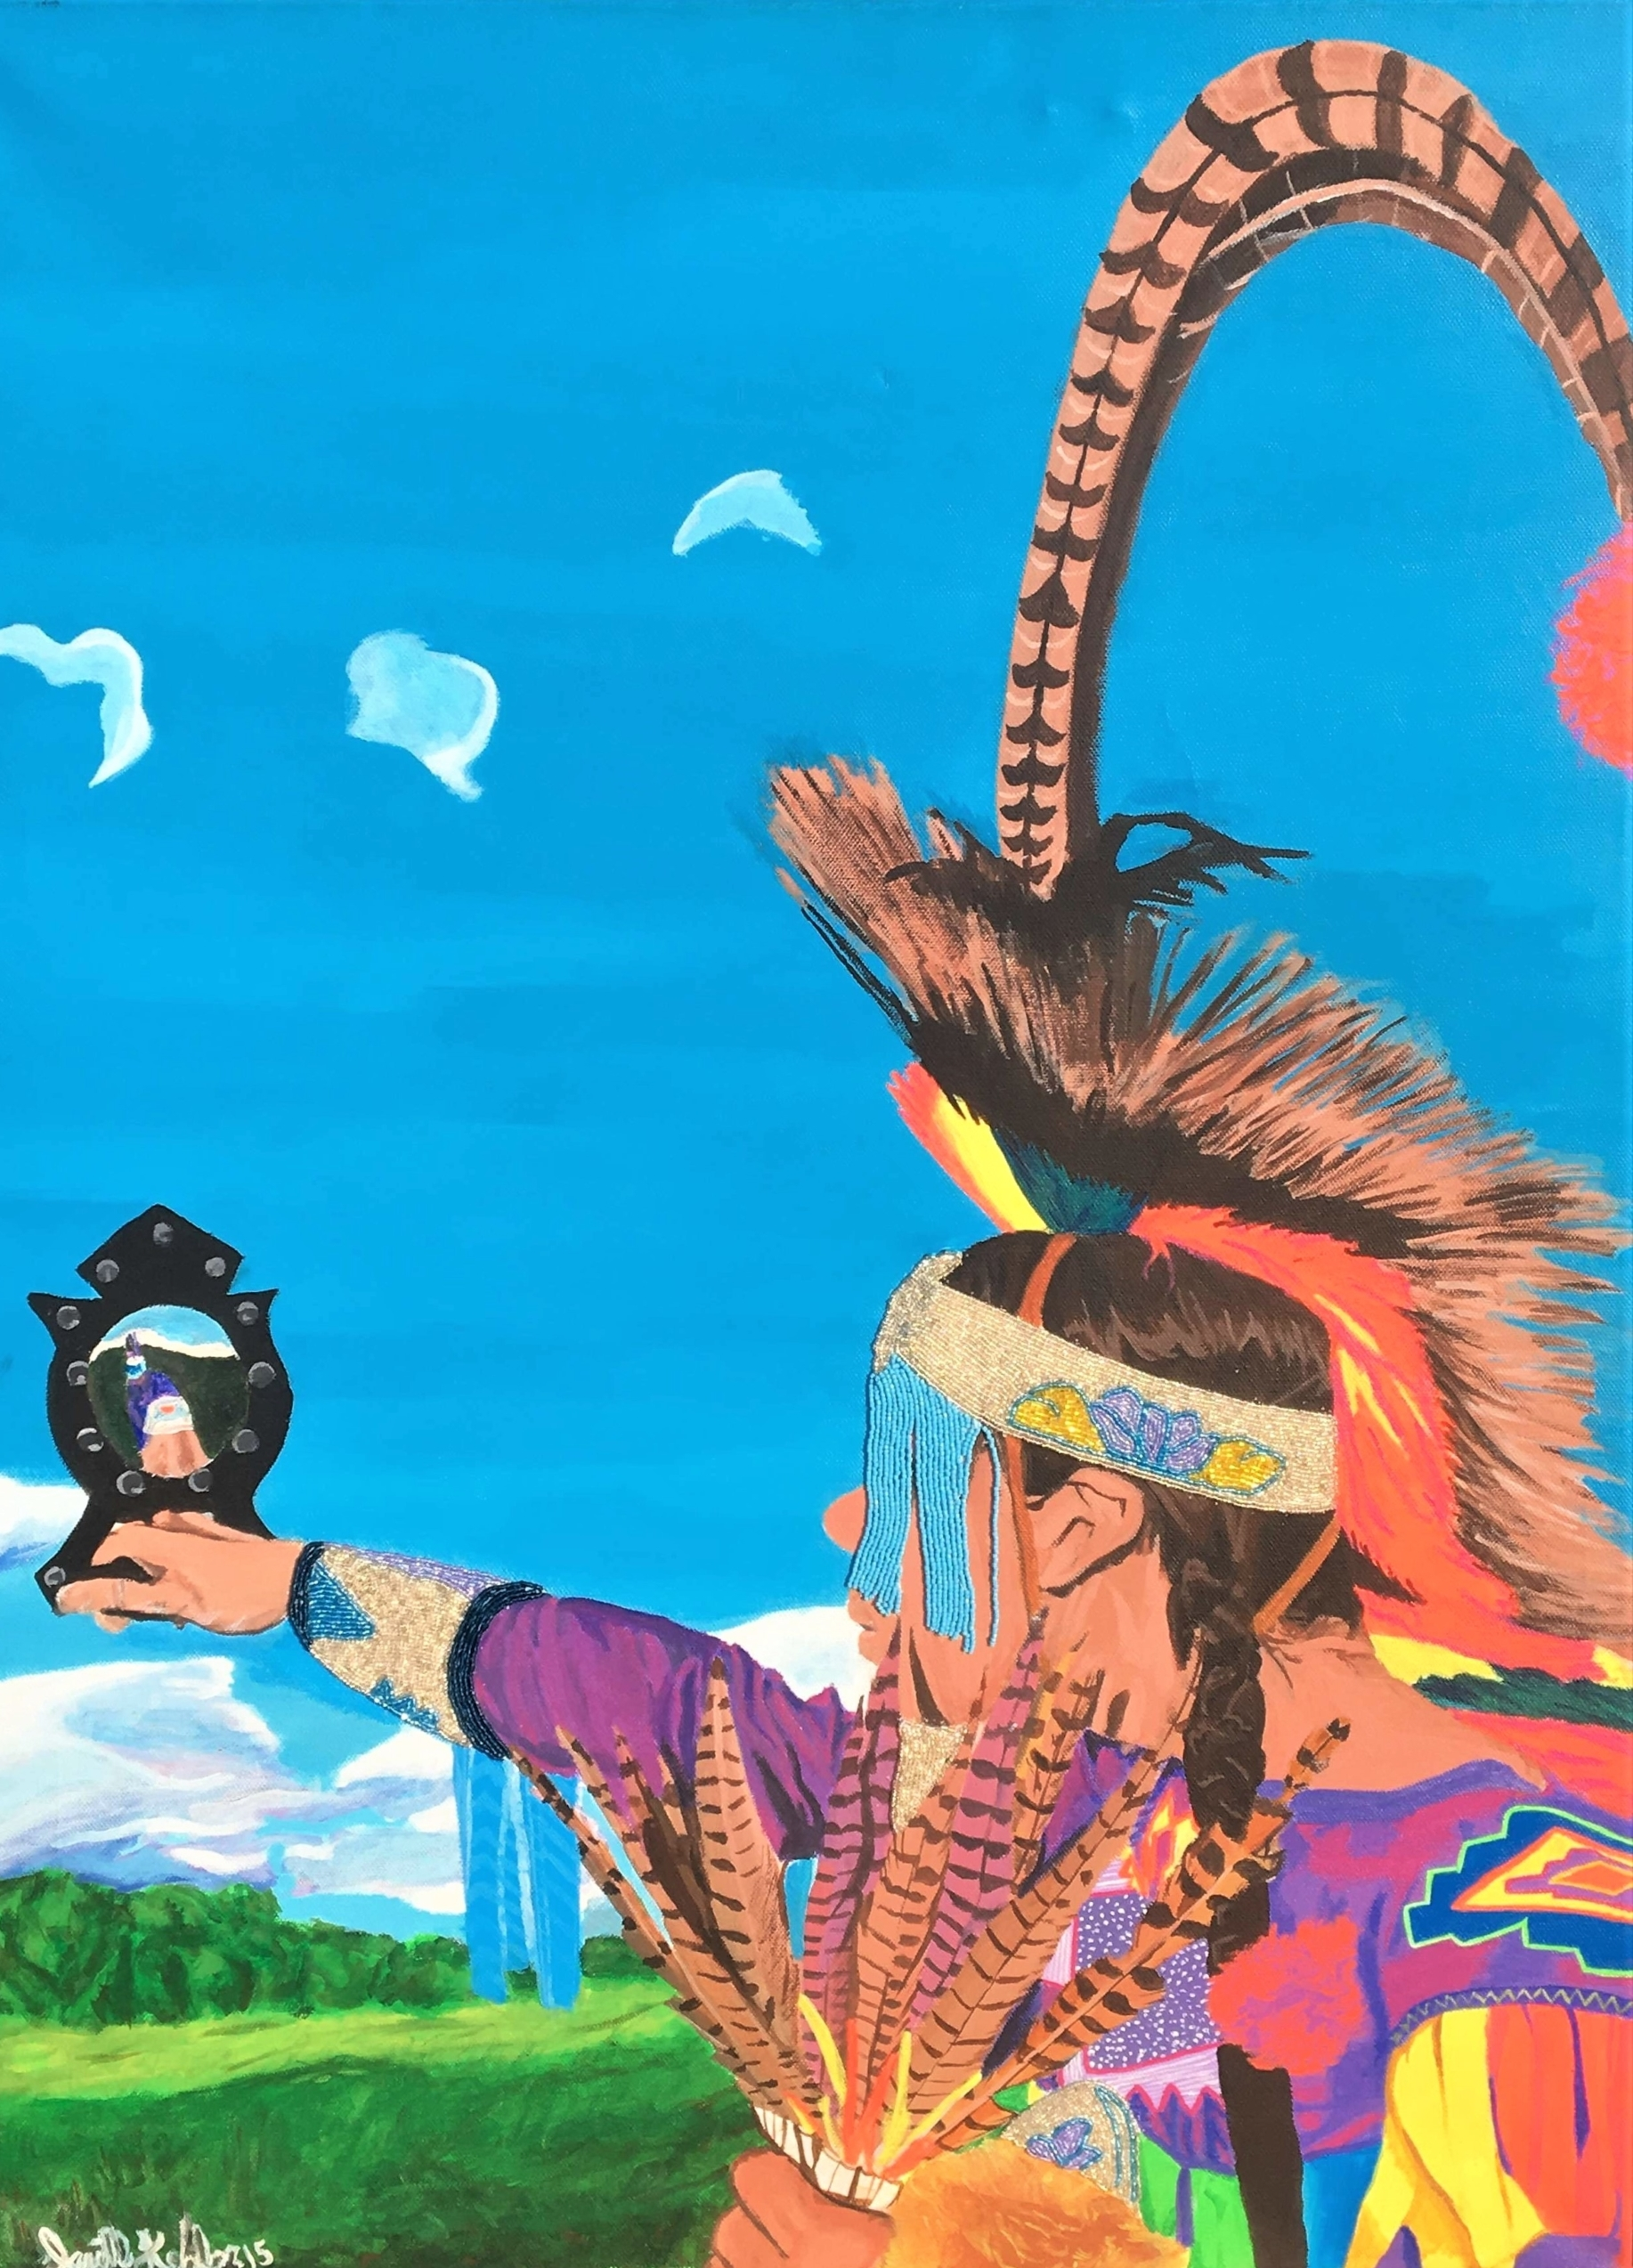 A crisp, colourful, high-intensity painting of a man in traditional regalia, standing under the expansive, strong light blue sky — a few white birds flying overhead. The medium is acrylic paint with sparkling beaded details.